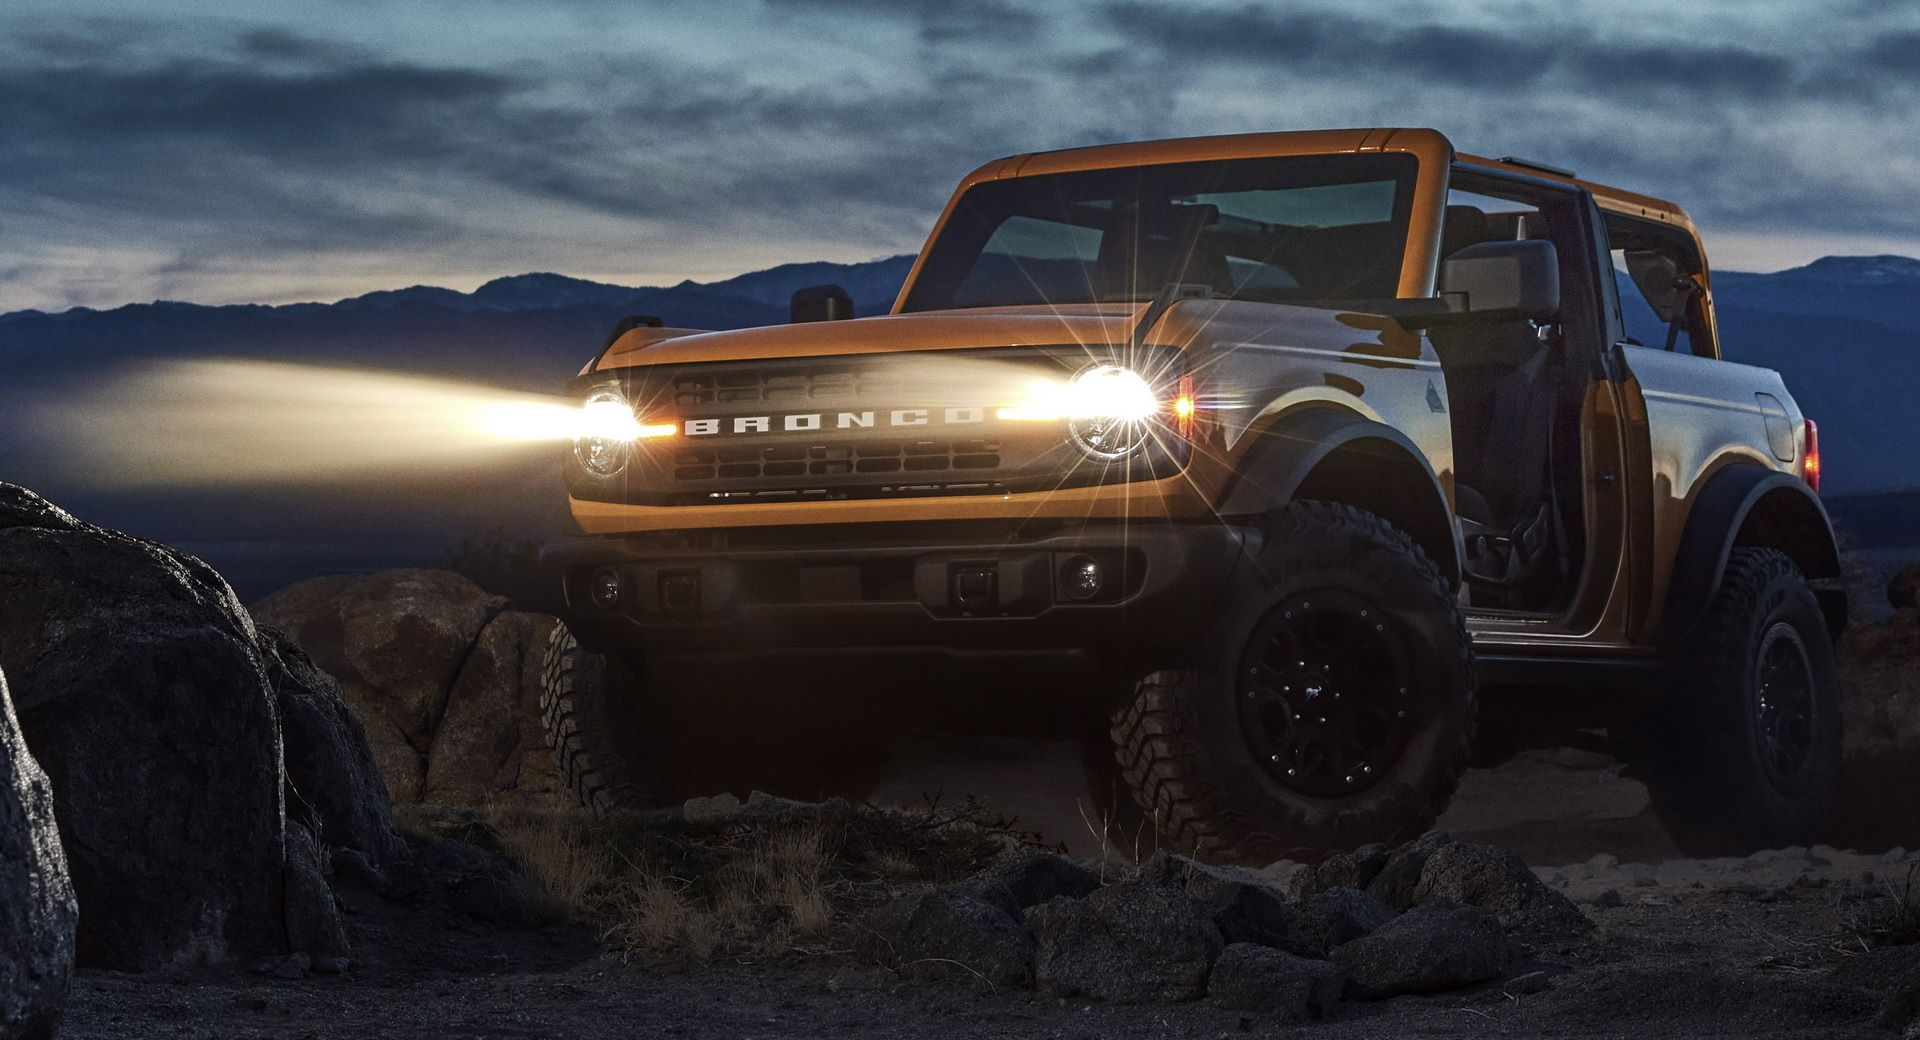 Pre-production 2021 two-door Bronco Black Diamond series in Cyber Orange Metallic Tri-Coat with Sasquatch™ off-road package.